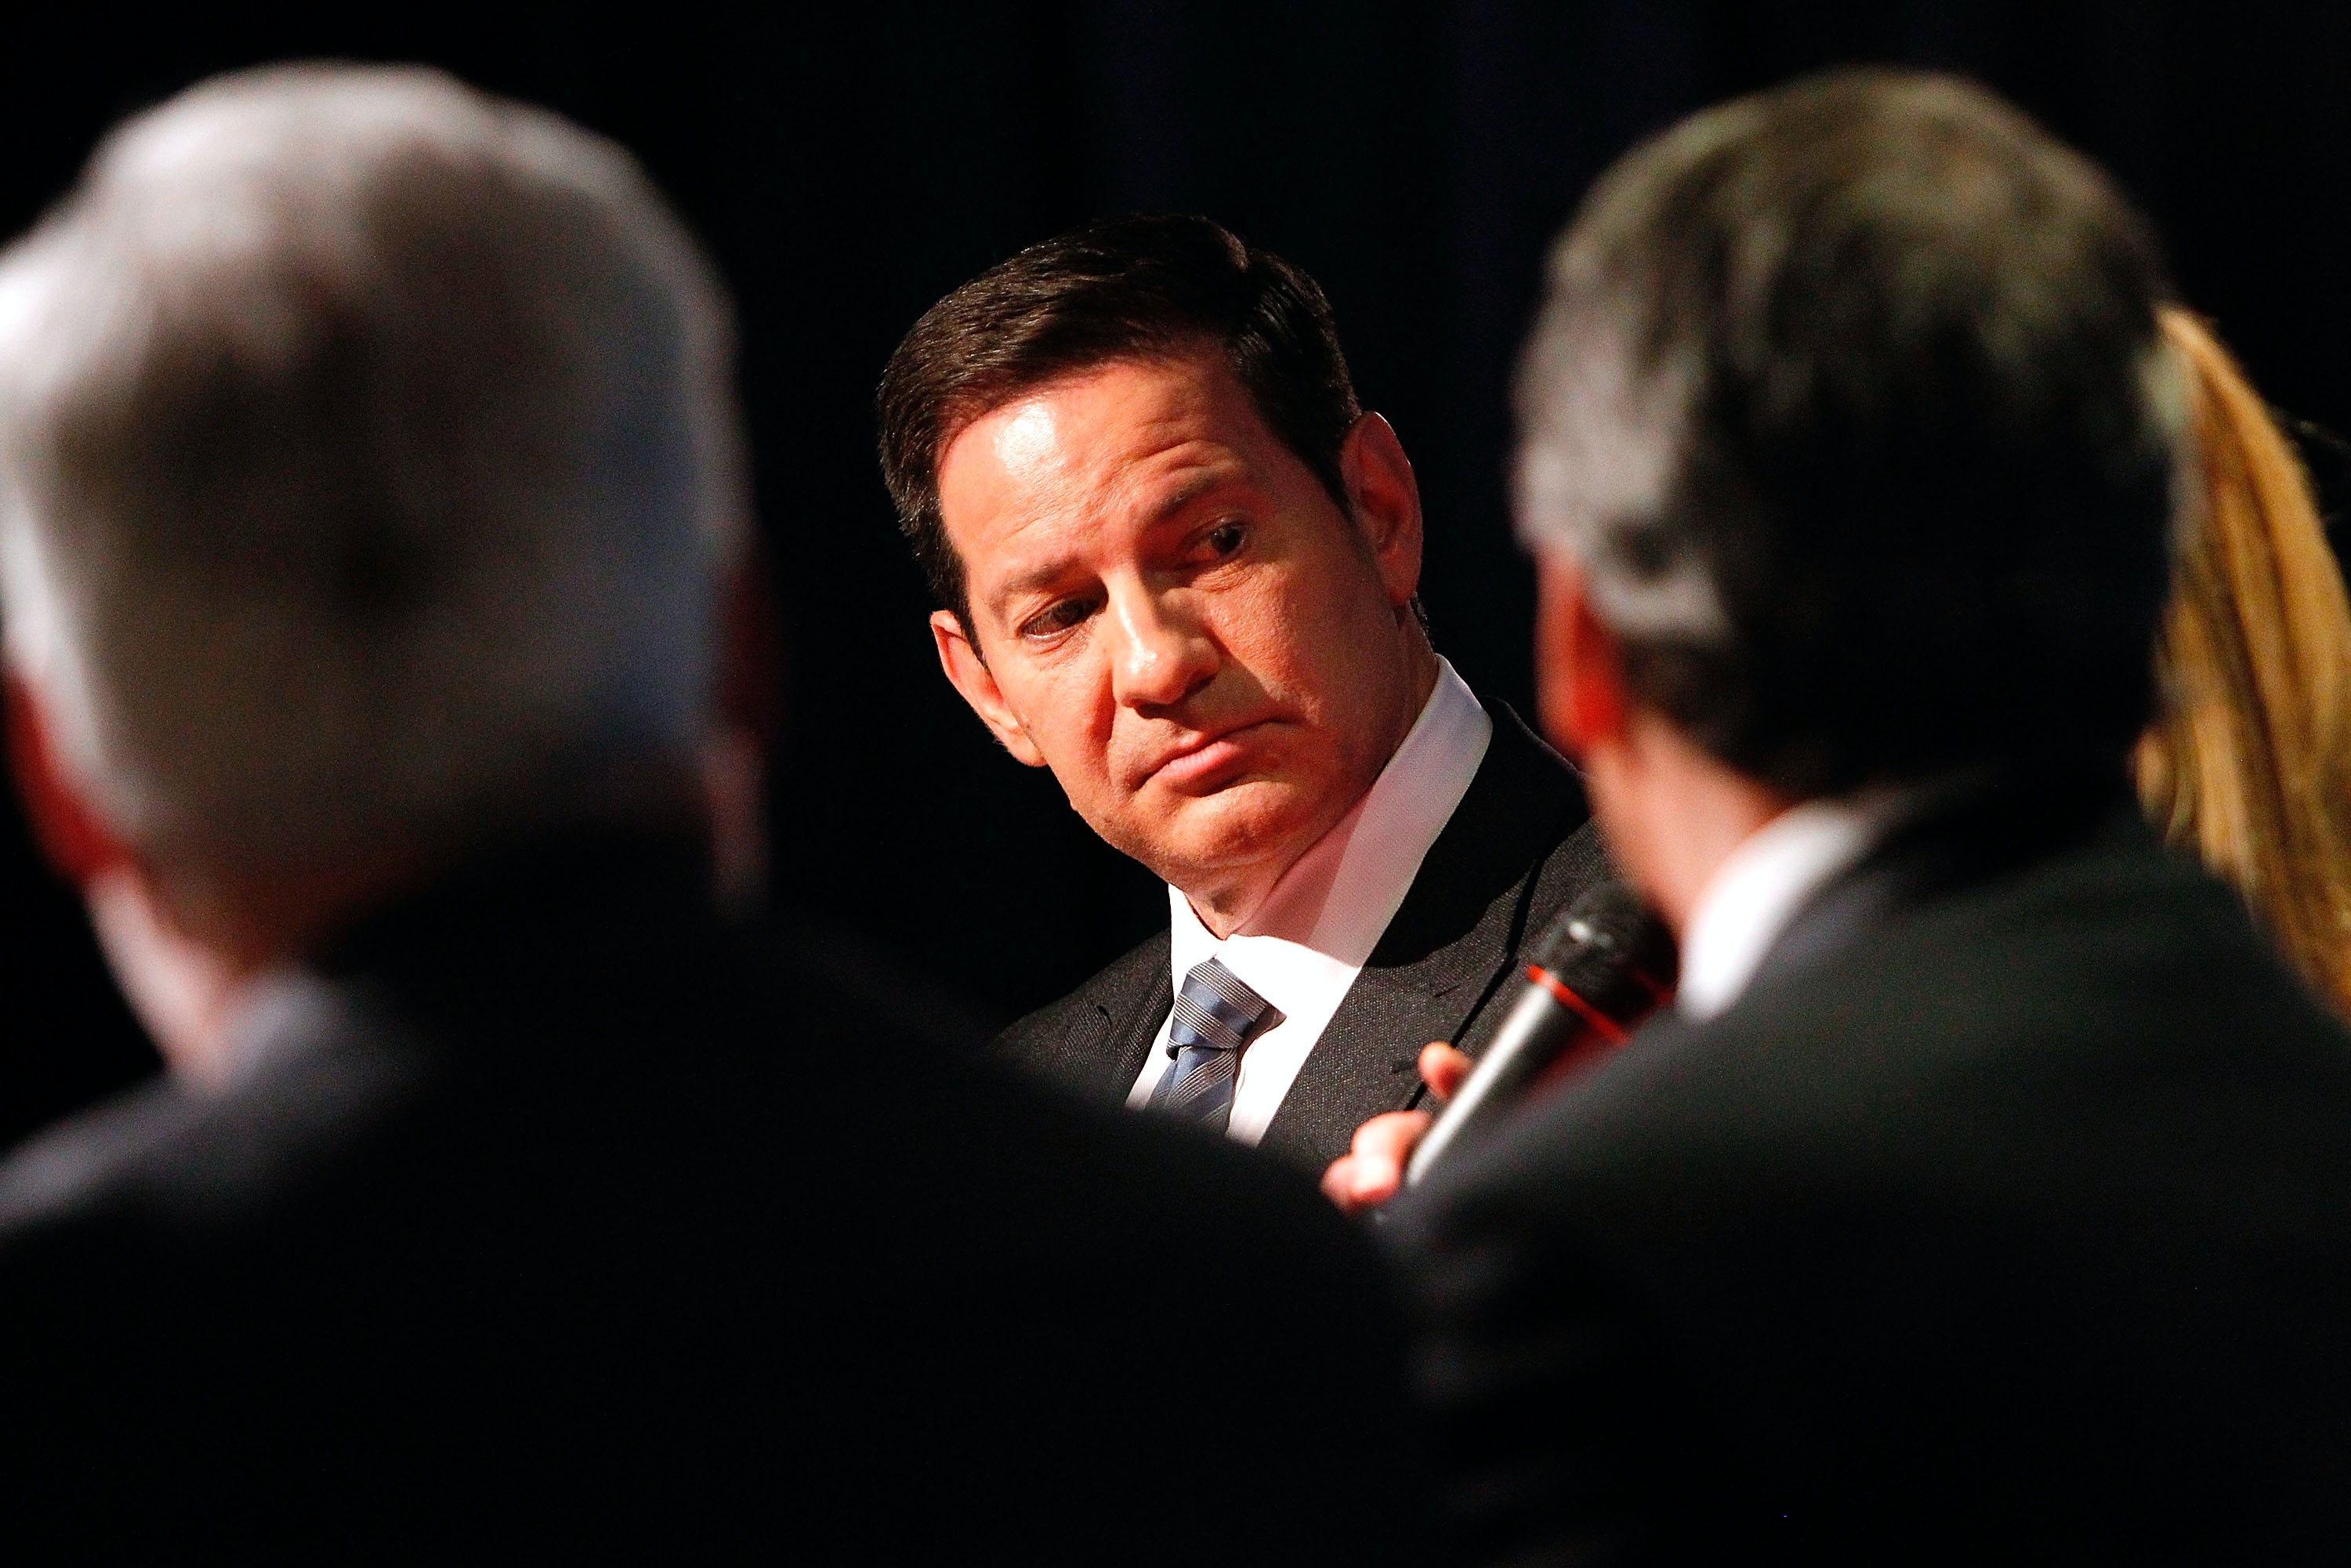 NBC News takes Mark Halperin off air after harassment claims